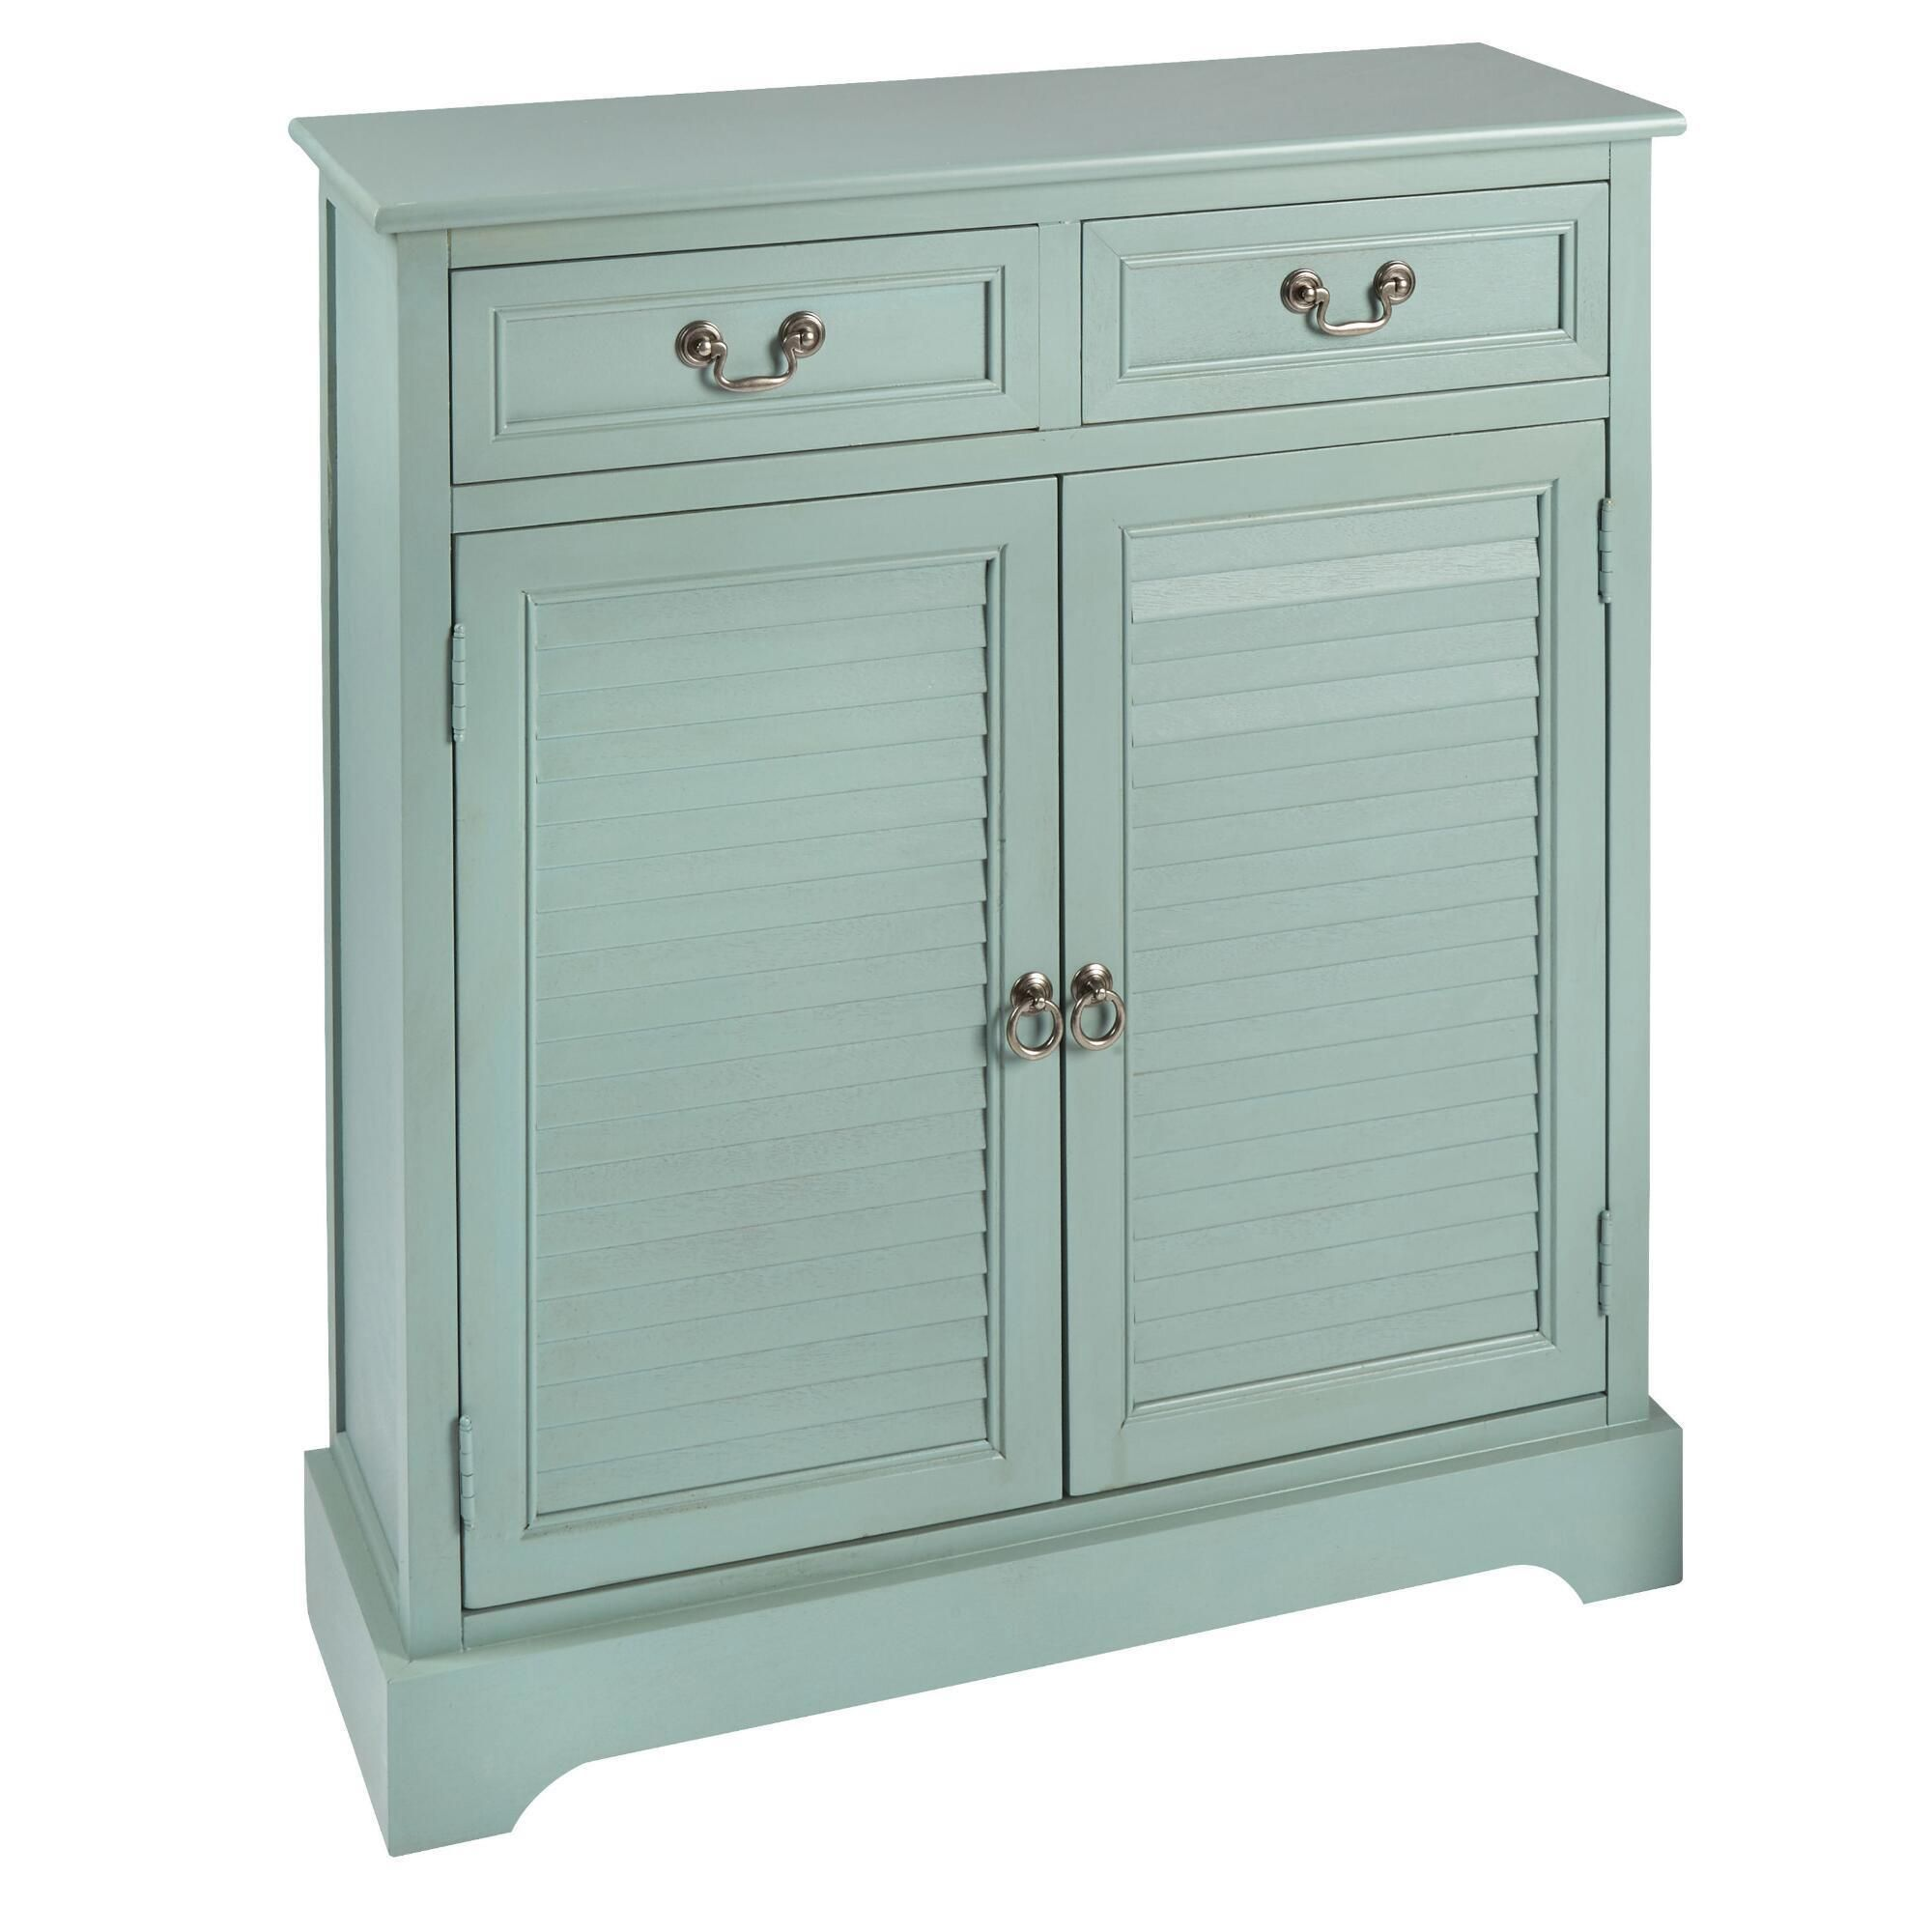 Decorate Top Of Armoire For Christmas